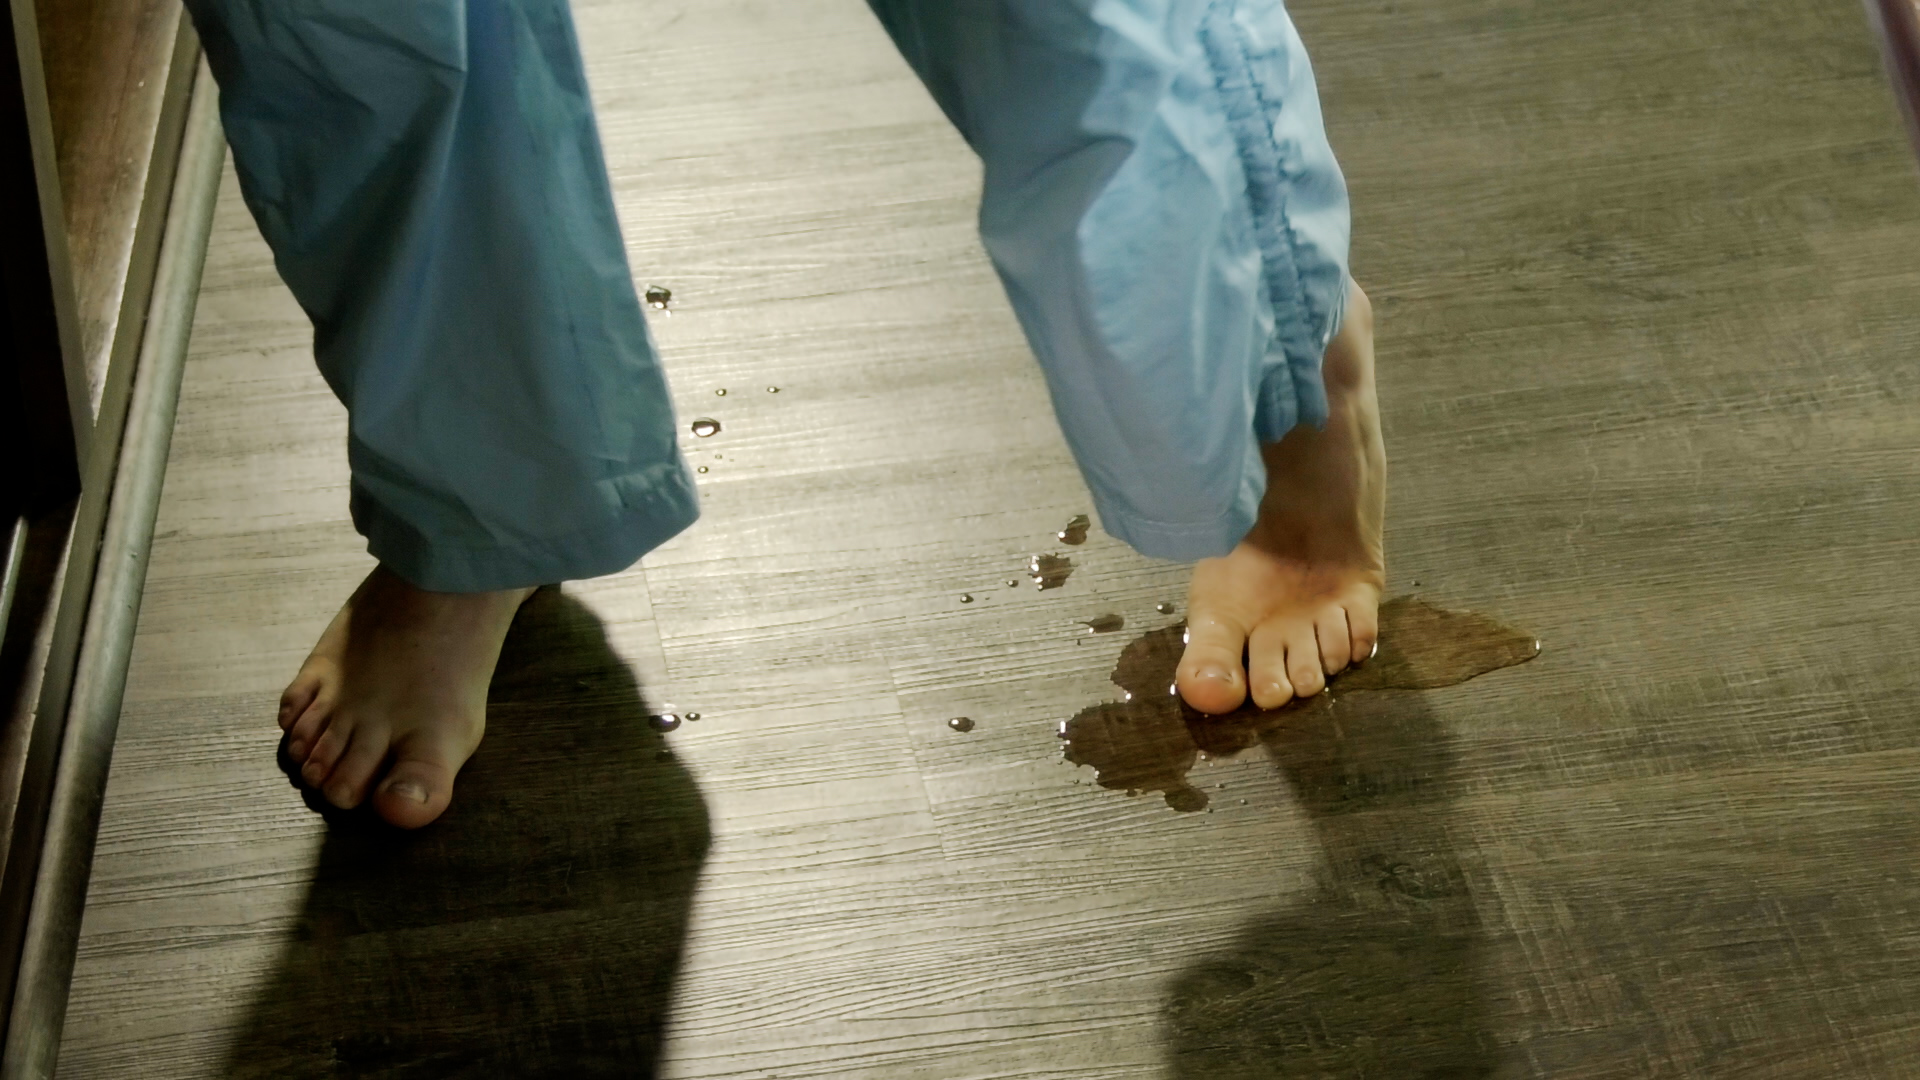 A small puddle forms around Lola's feet as a result of her diaper leaking.